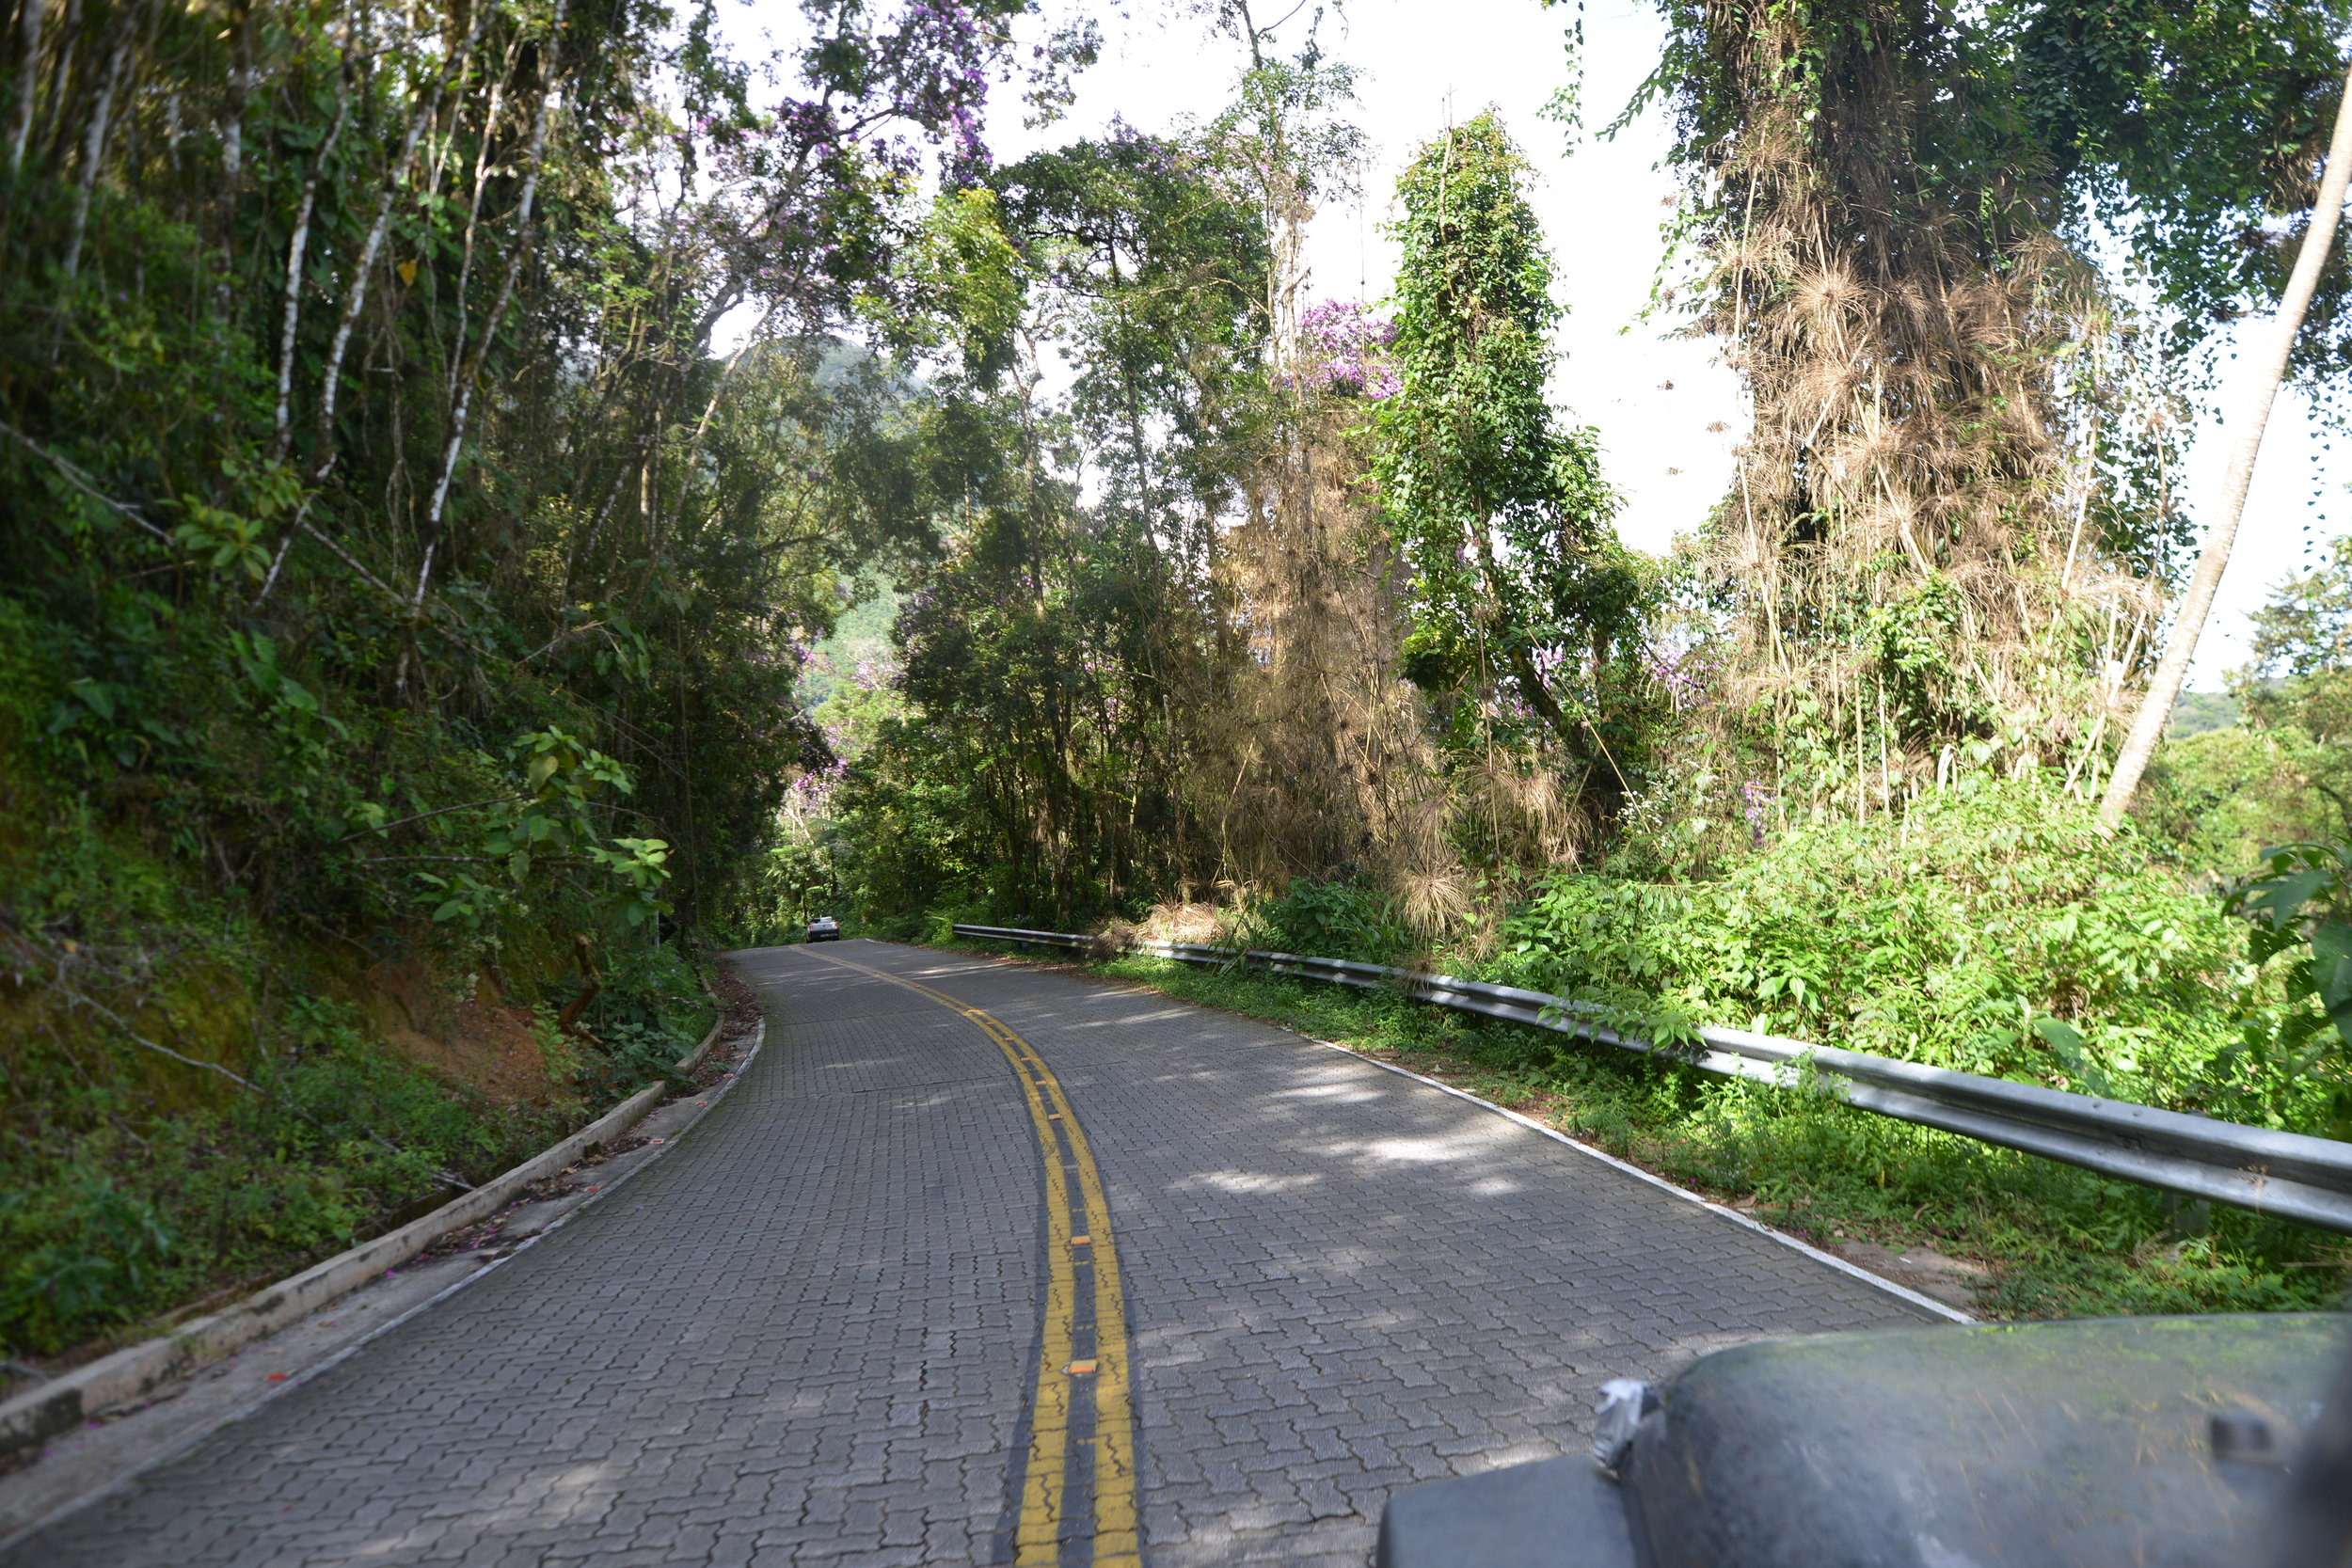 One of the nicest road on Earth: This back road between Guaratingueta in the State of Sao Paulo and Paraty, in the state of Rio de Janeiro.